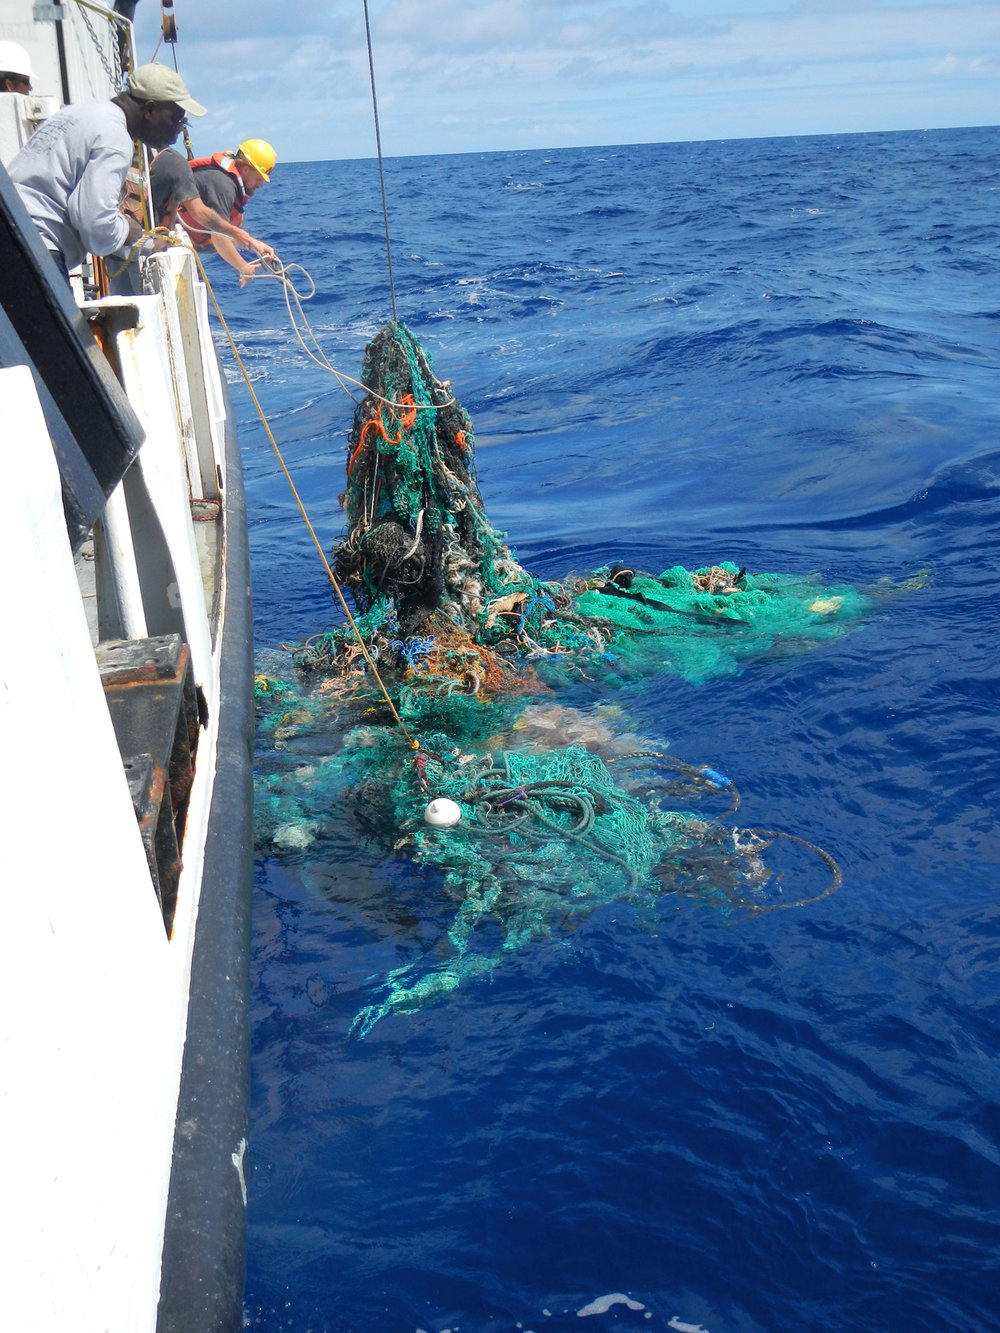 toc-megaexpedition-ghostnet-retrieving-lowres.jpg